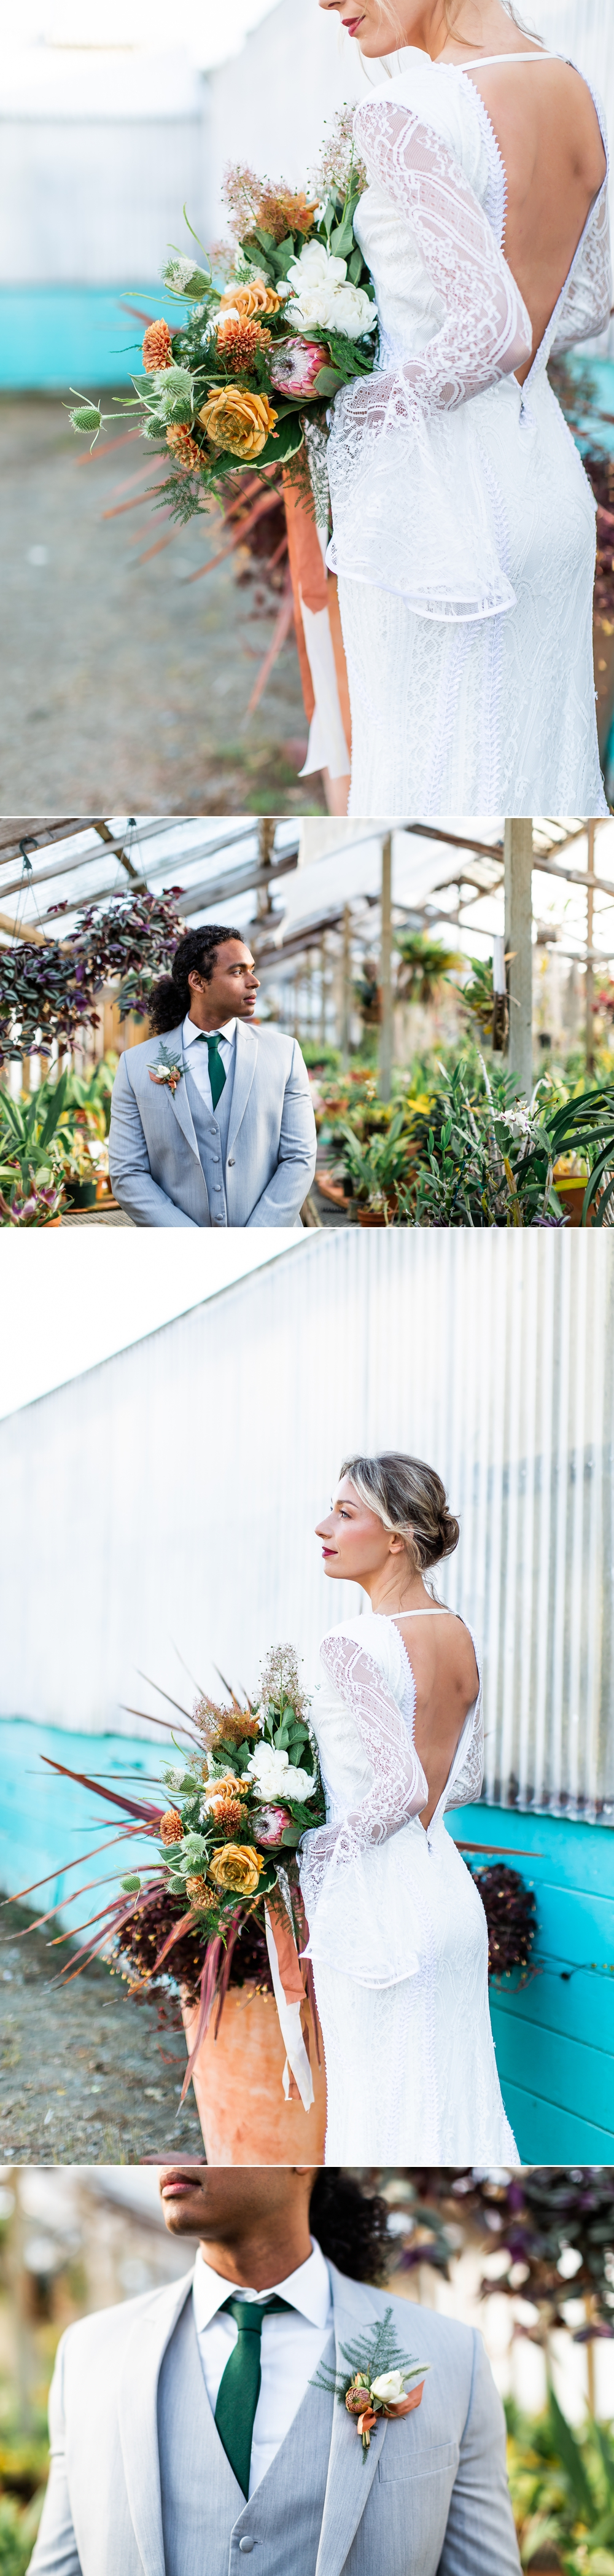 Shelldance Orchid Garden Wedding, Bewilder Floral